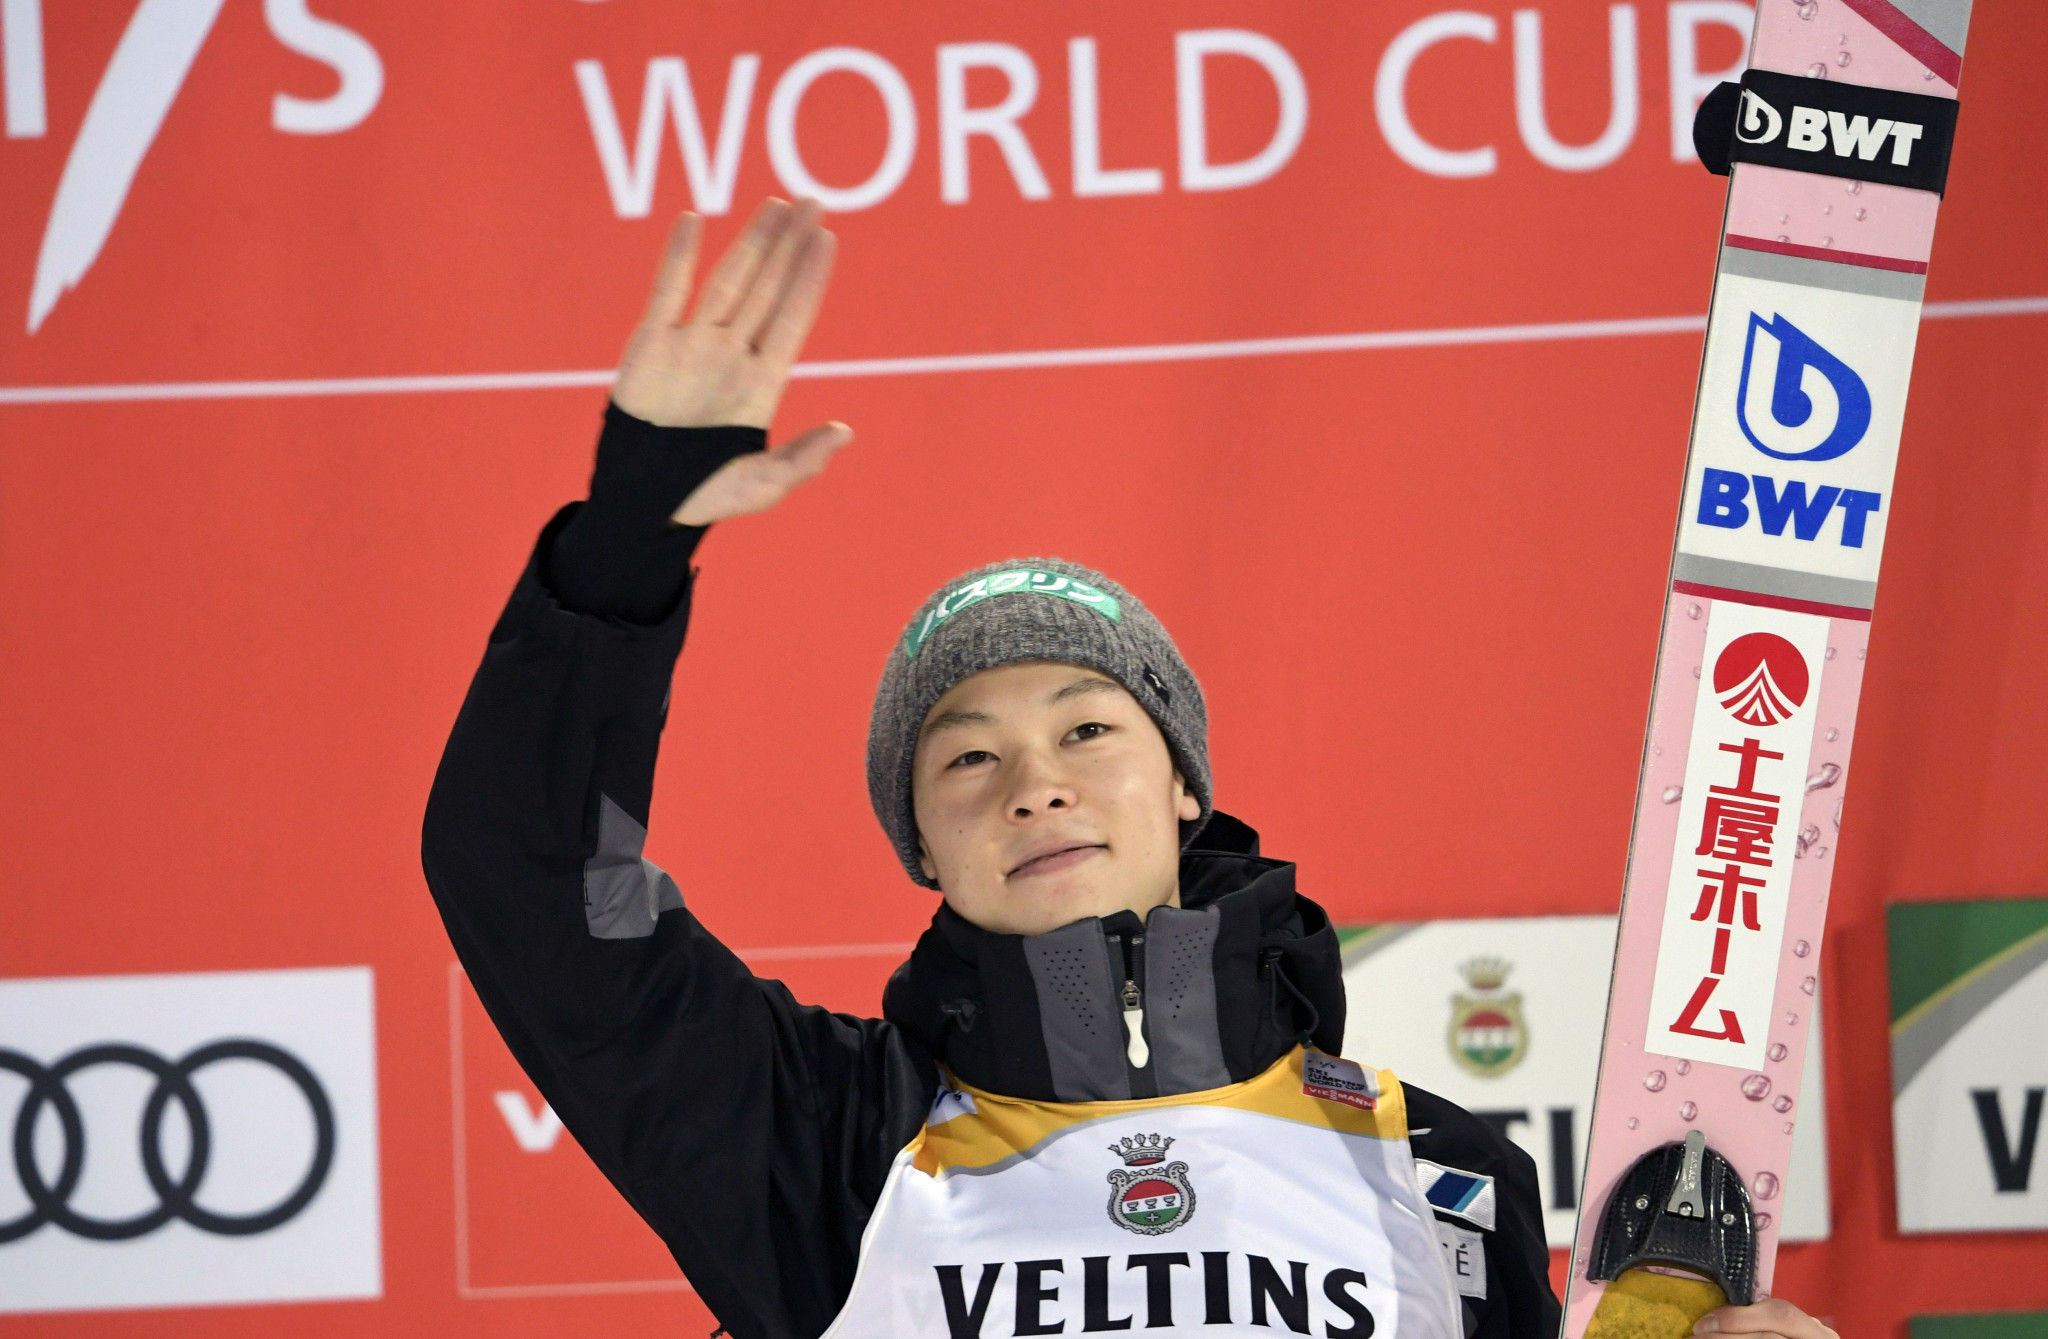 Japan's Ryoyu Kobayashi triumphed in the second men's event of the FIS Ski Jumping World Cup in Willingen ©Getty Images